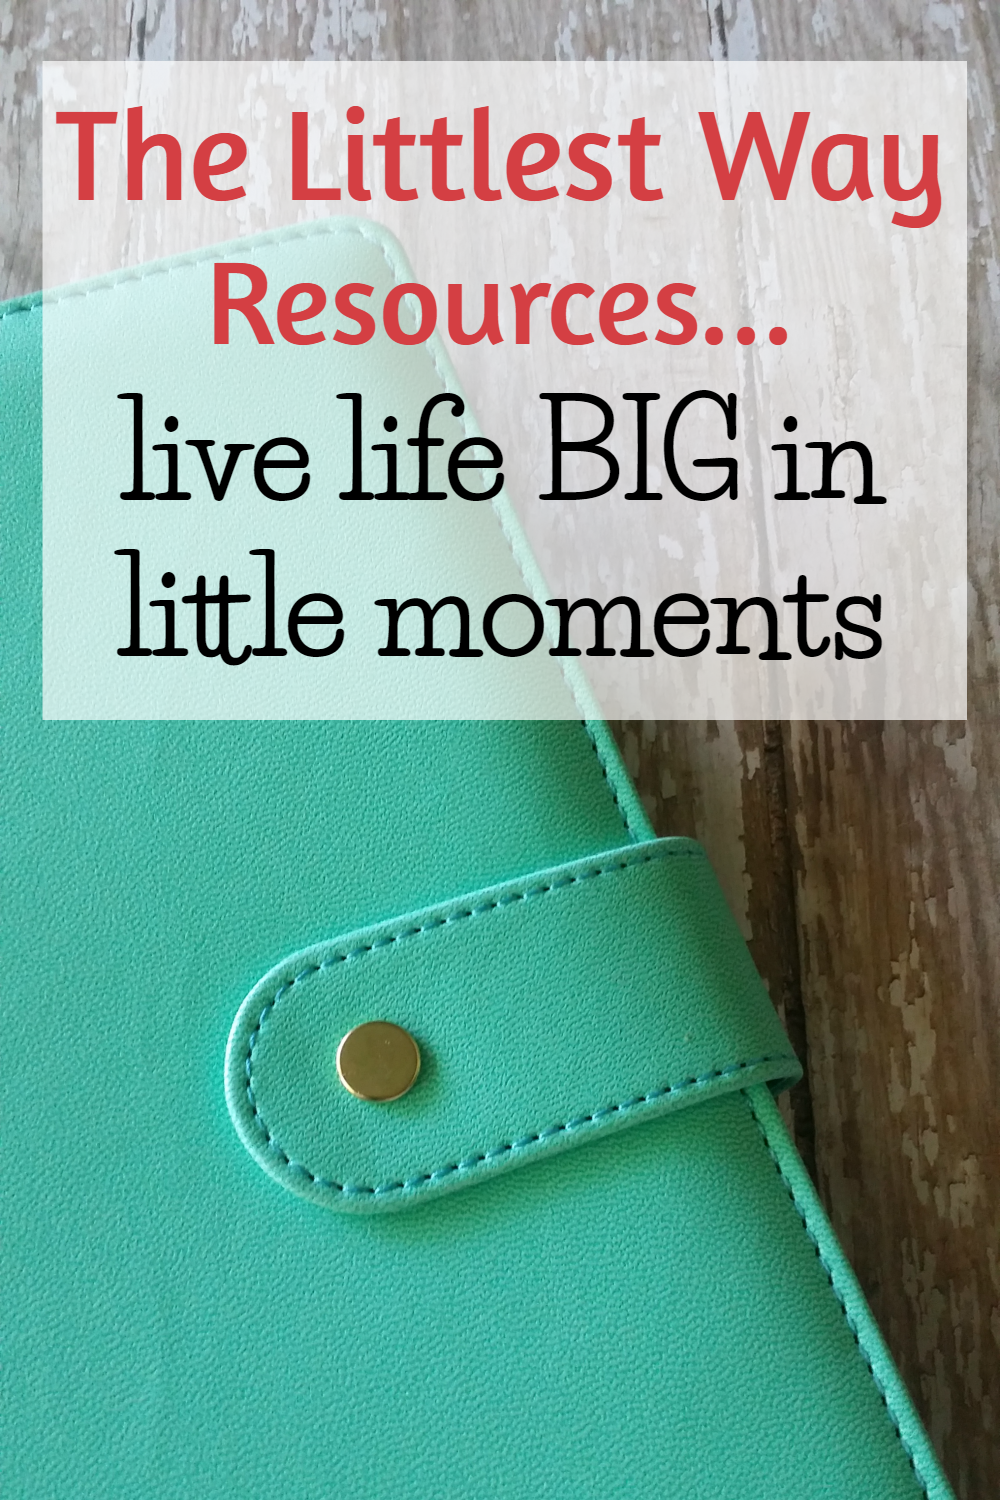 The Littlest Way Resources to products and stores I recommend to family and friends